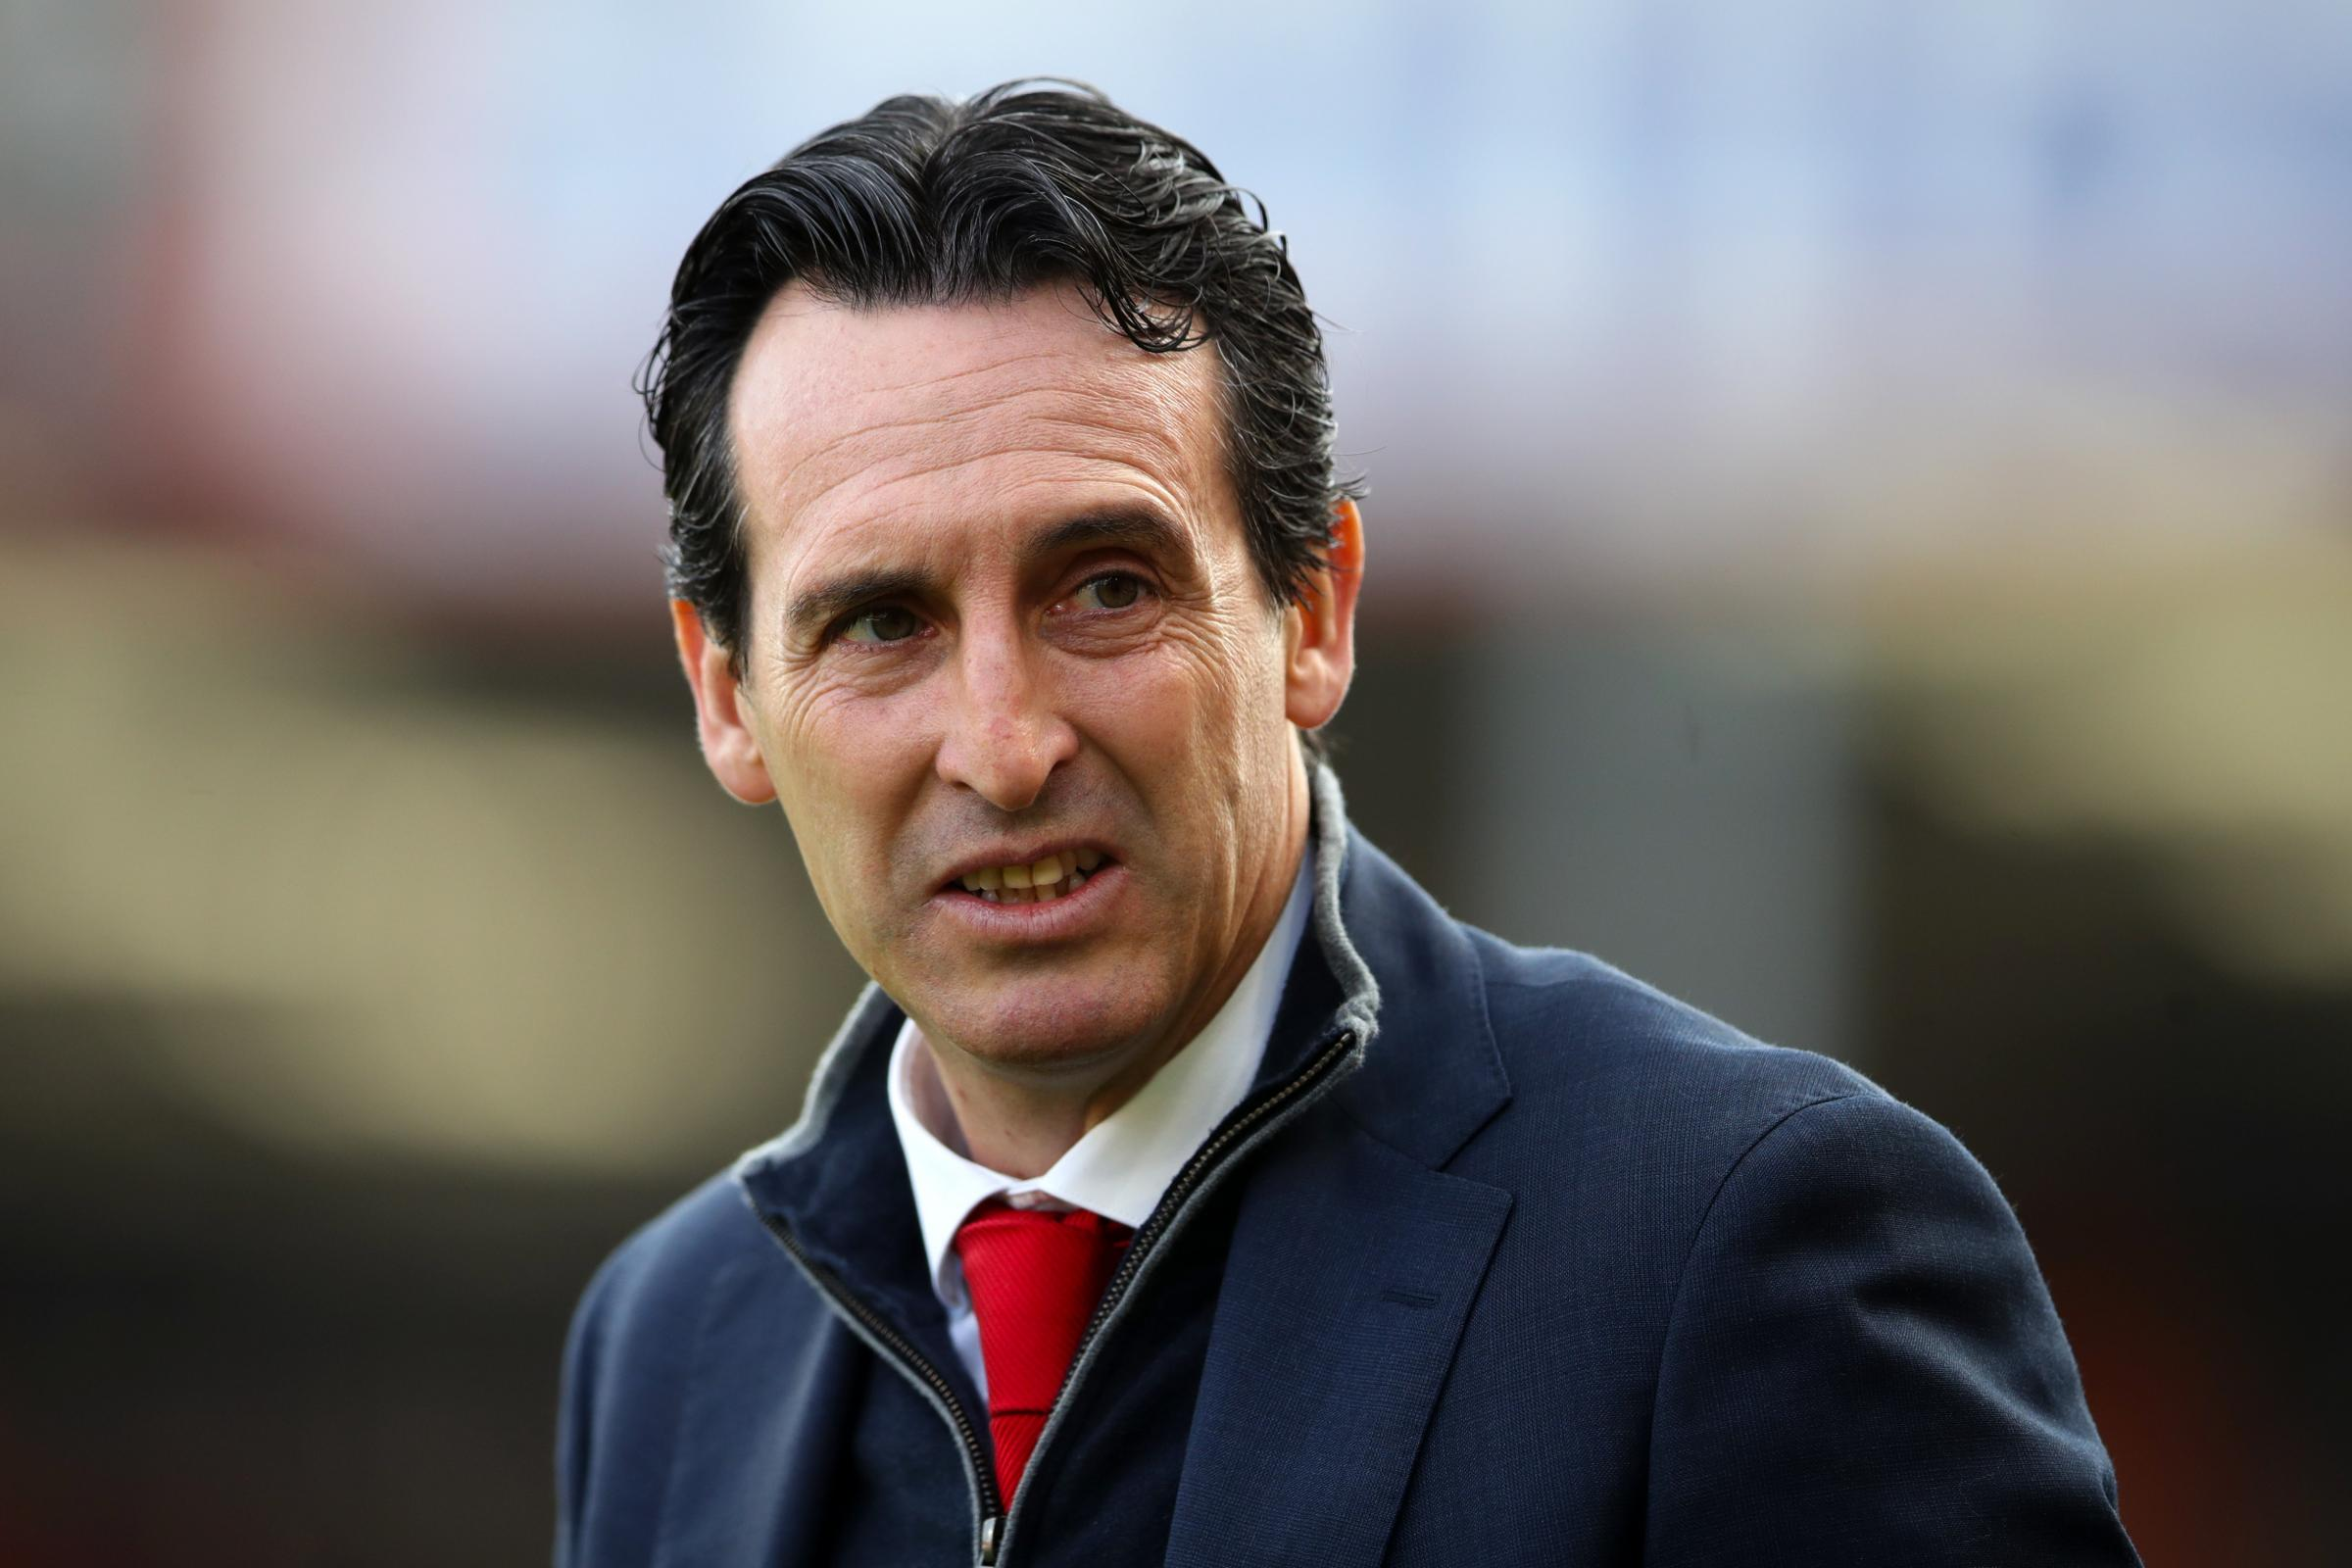 Arsenal manager Unai Emery has led his team to a 20-match unbeaten run